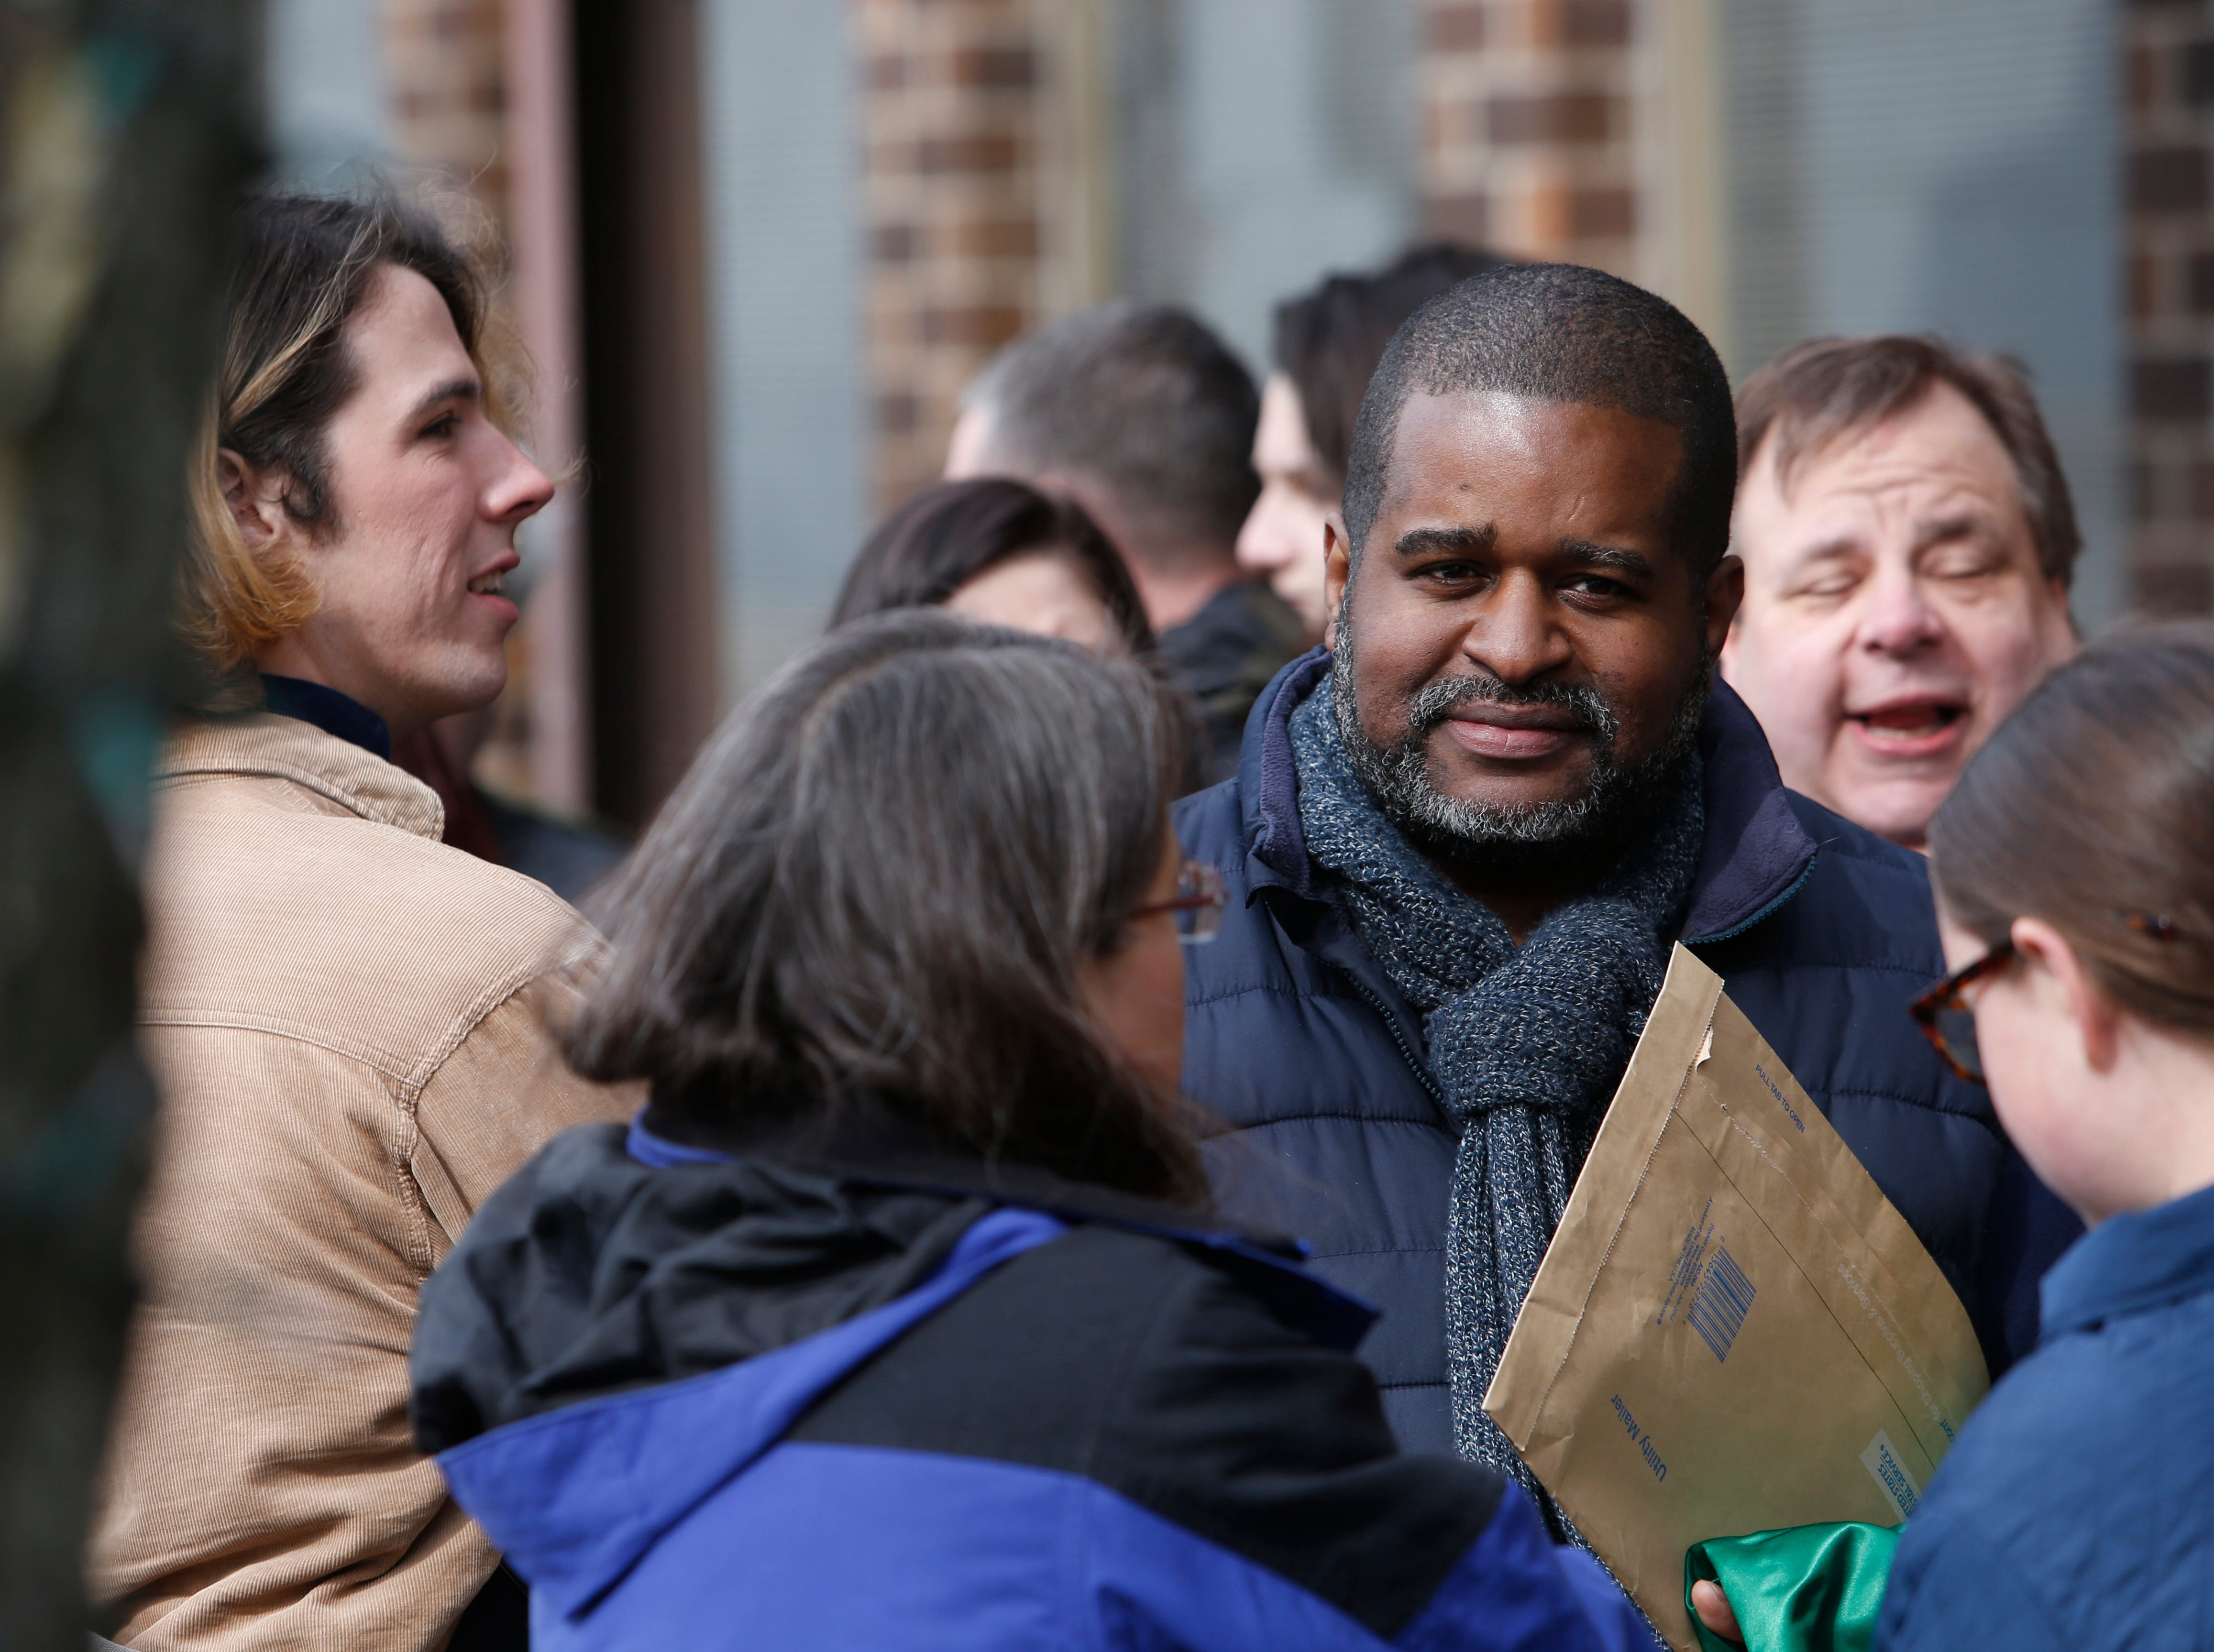 """Willis Williams of Rhinebeck on line for Saturday's open casting call for an HBO series staring Mark Ruffalo, called """"I Know This Much is True"""" at the Majed J. Nesheiwat Convention Center in the City of Poughkeepsie on Feb 23, 2019."""